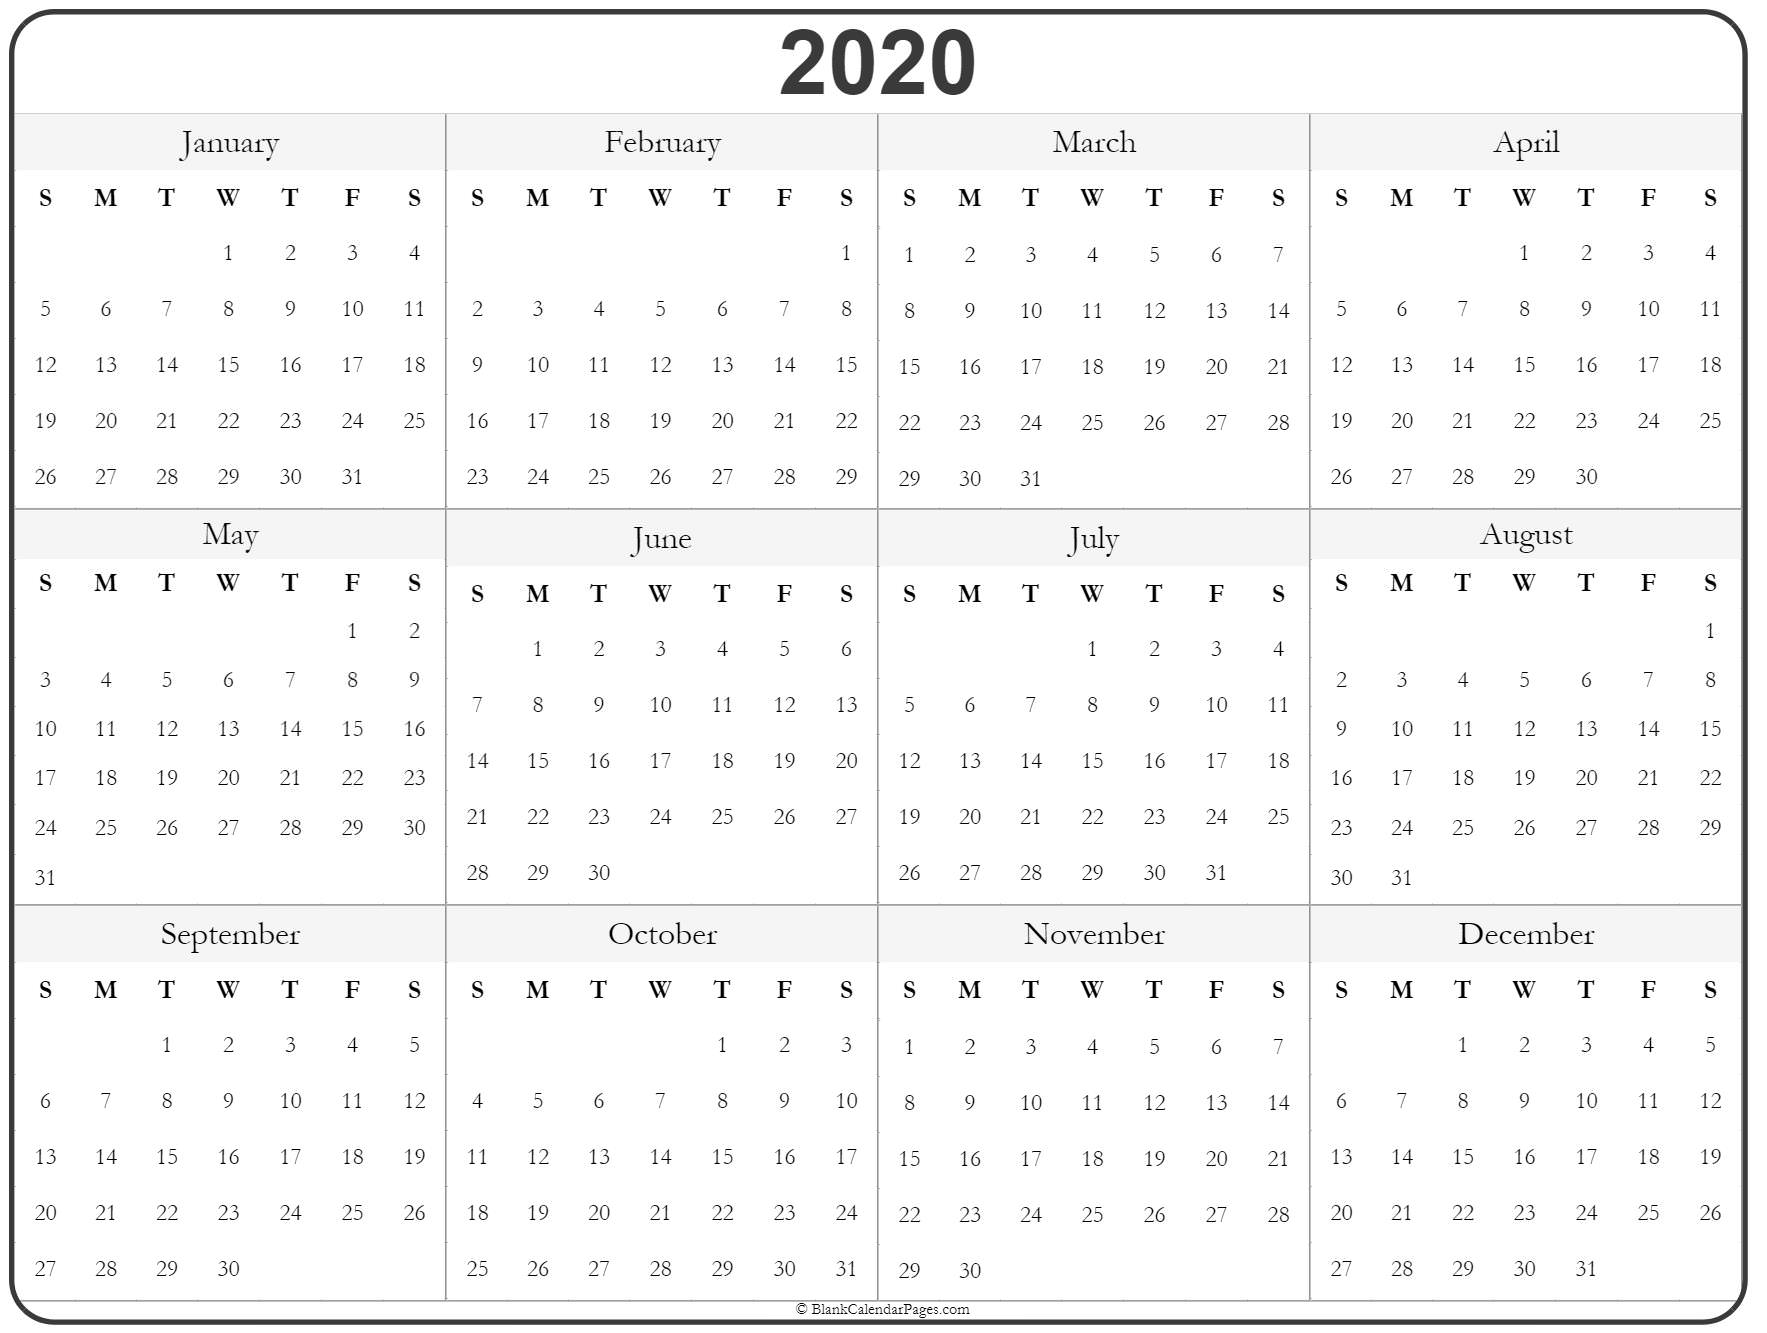 photograph relating to Printable Calendar 2020 named 2020 calendar year calendar annually printable